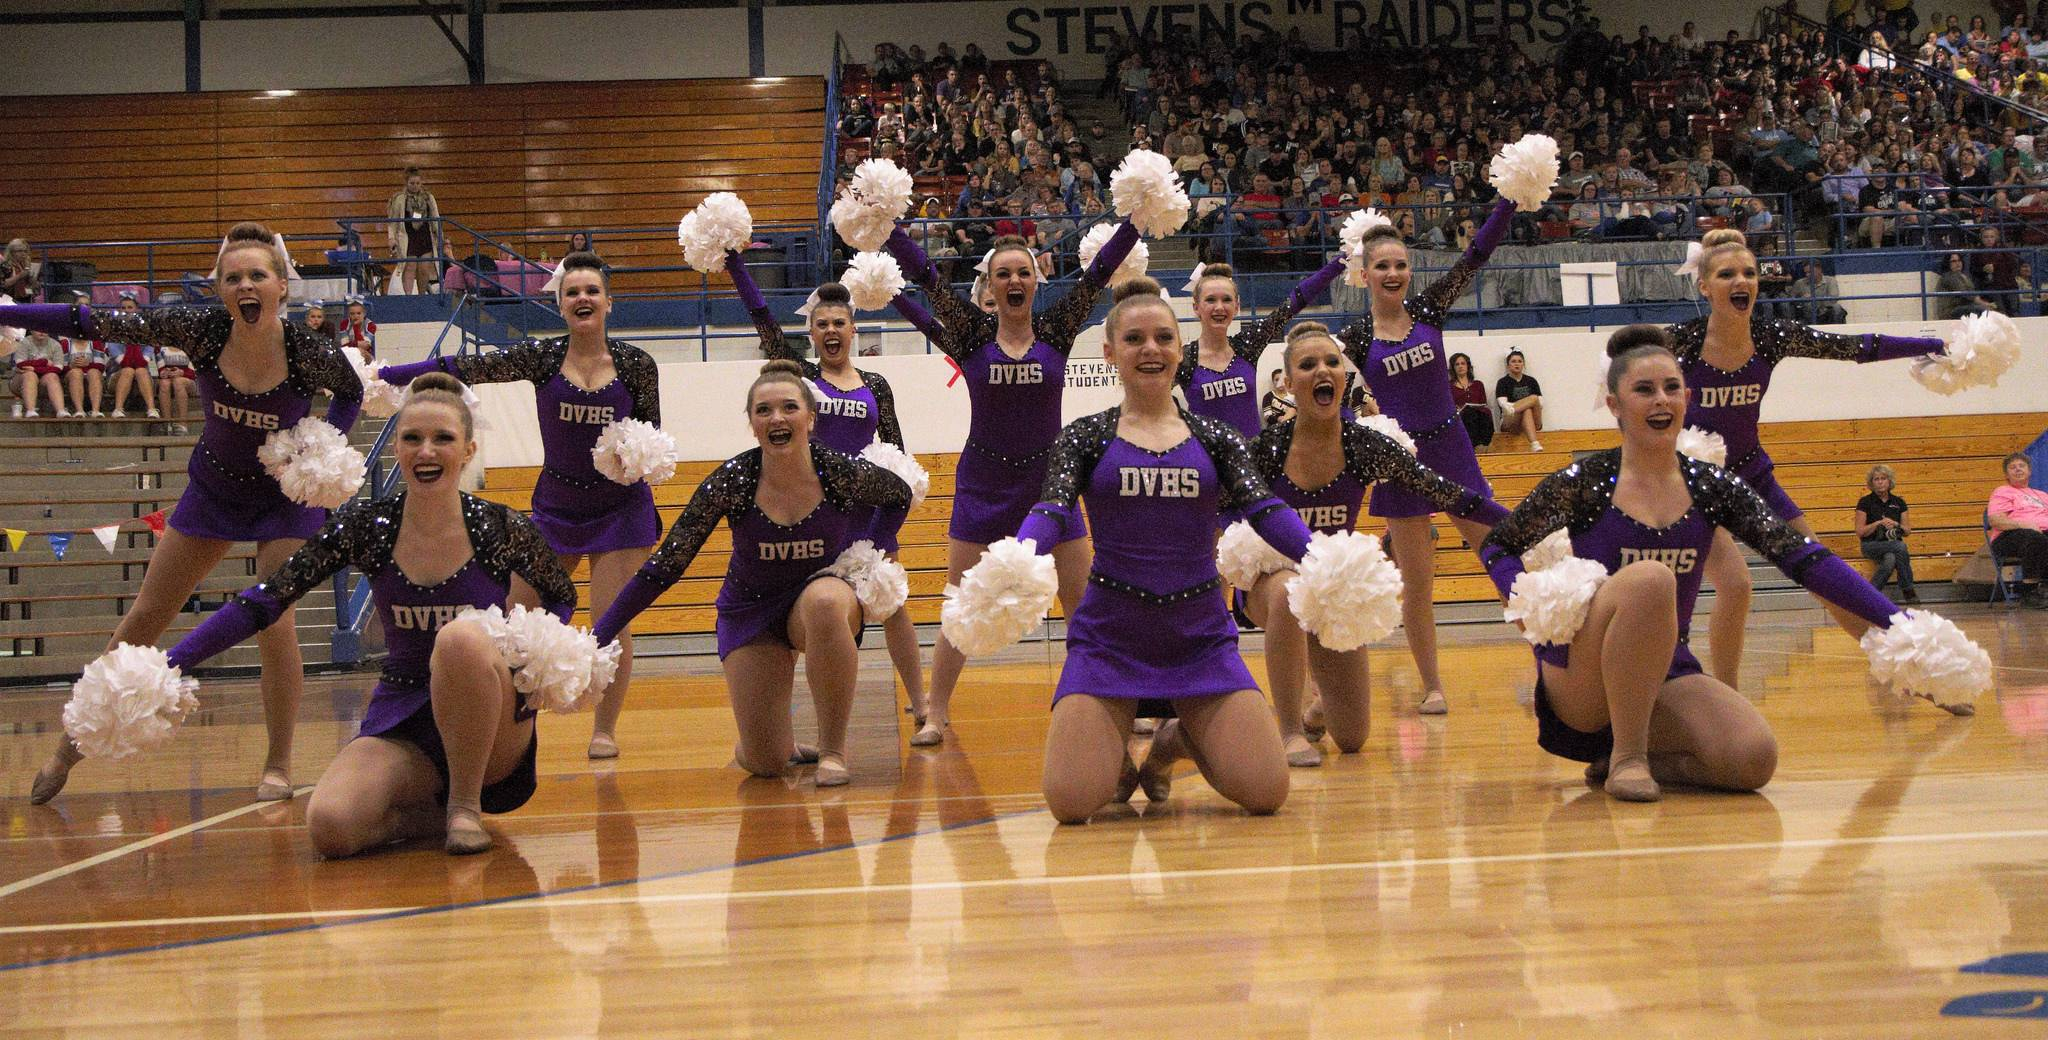 Dakota Valley cheer team